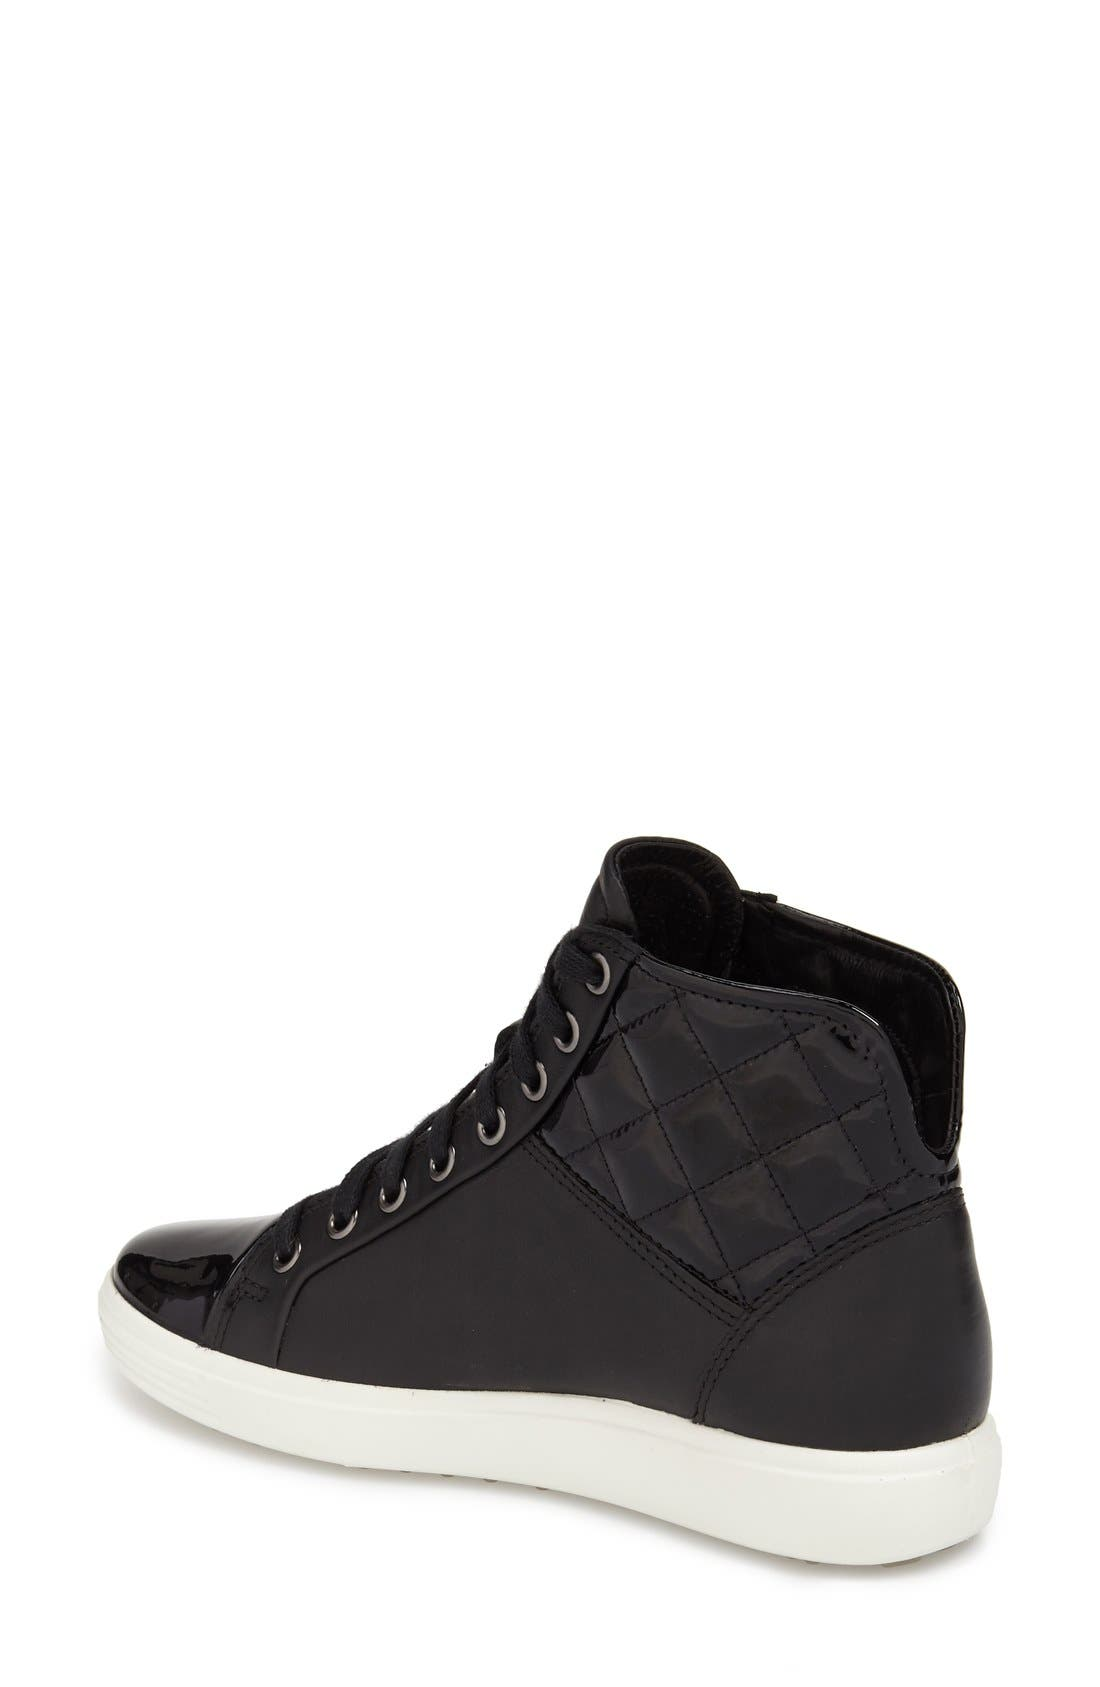 'Soft 7' Quilted High Top Sneaker,                             Alternate thumbnail 4, color,                             009